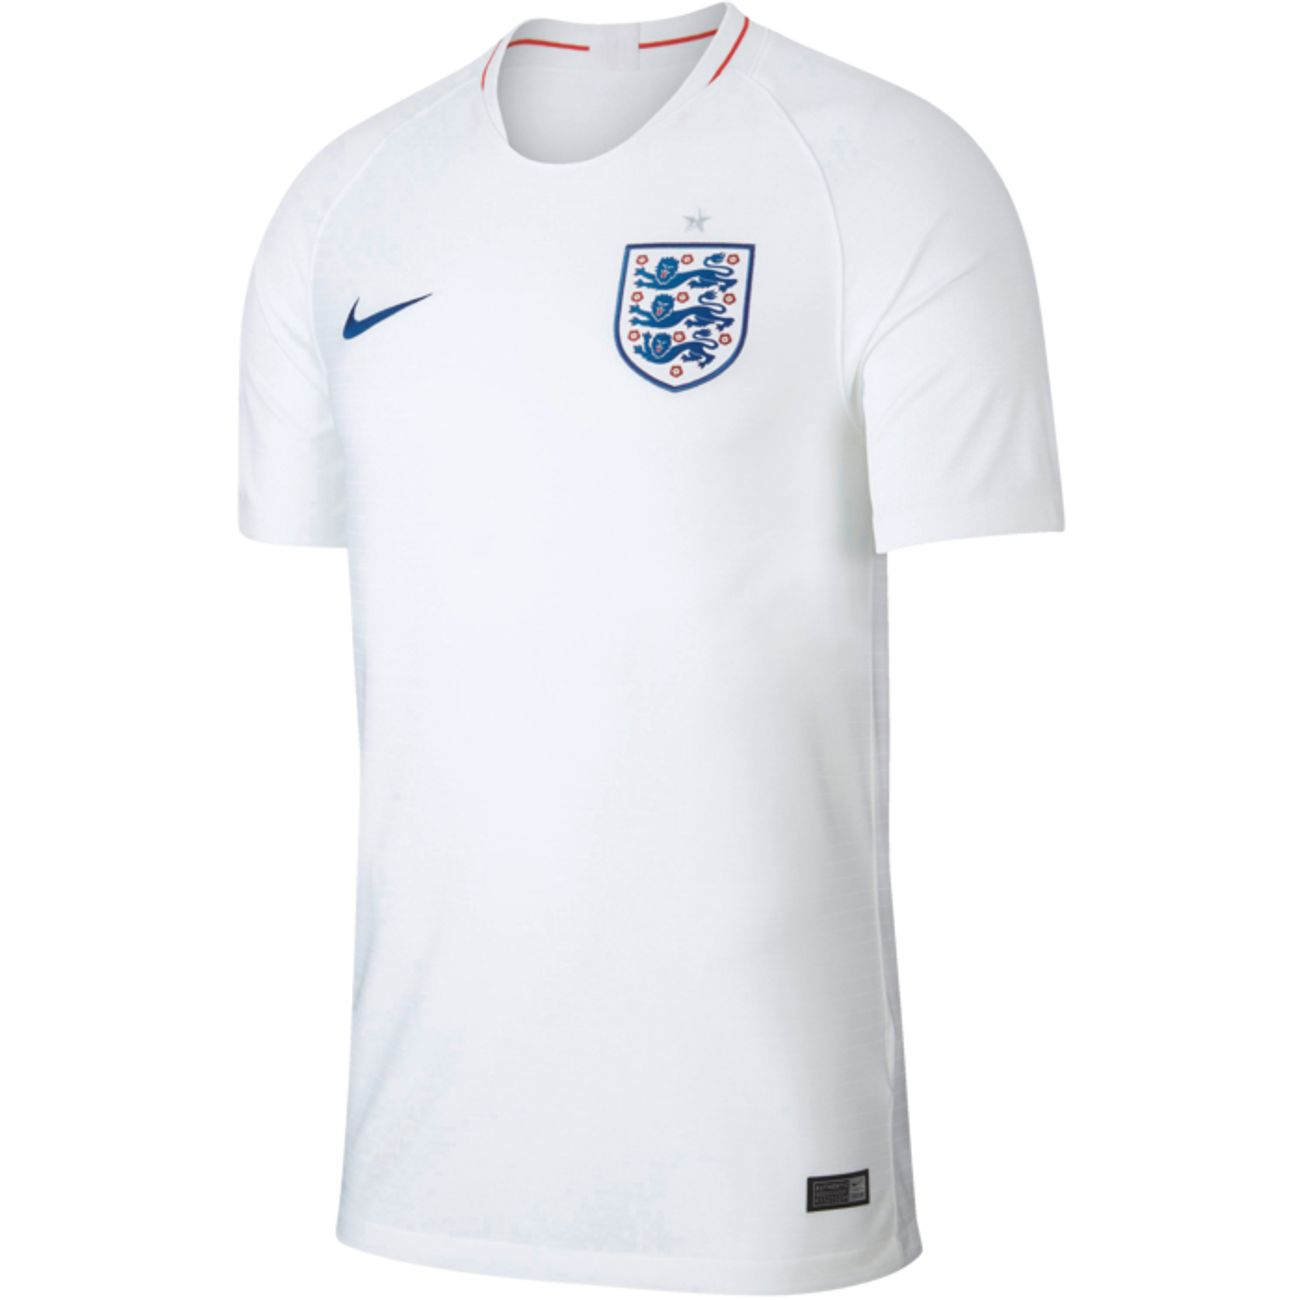 MAILLOT FOOTBALL   NIKE ENT MAILLOT DOMICILE 18